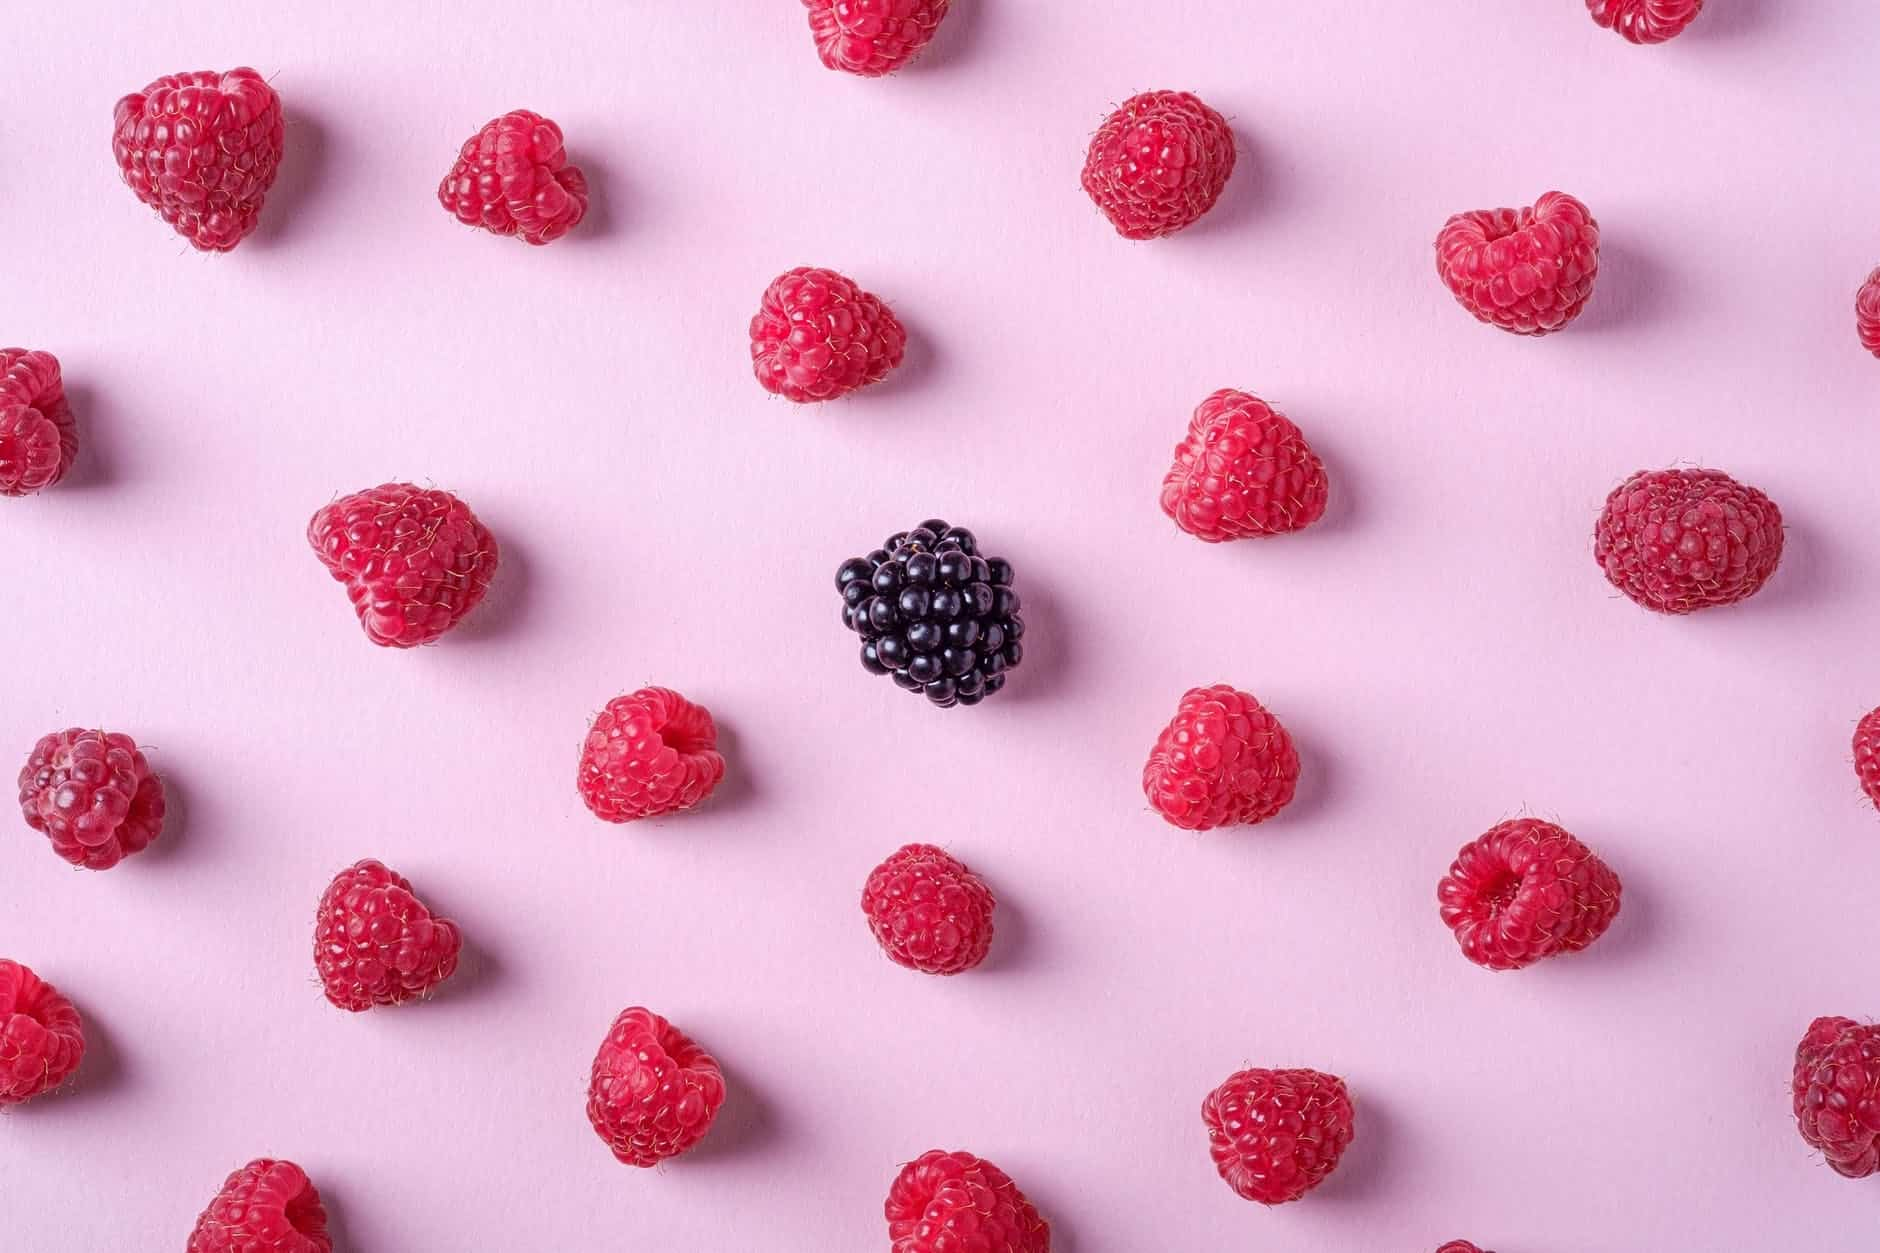 photo of raspberries and blackberry on pink background